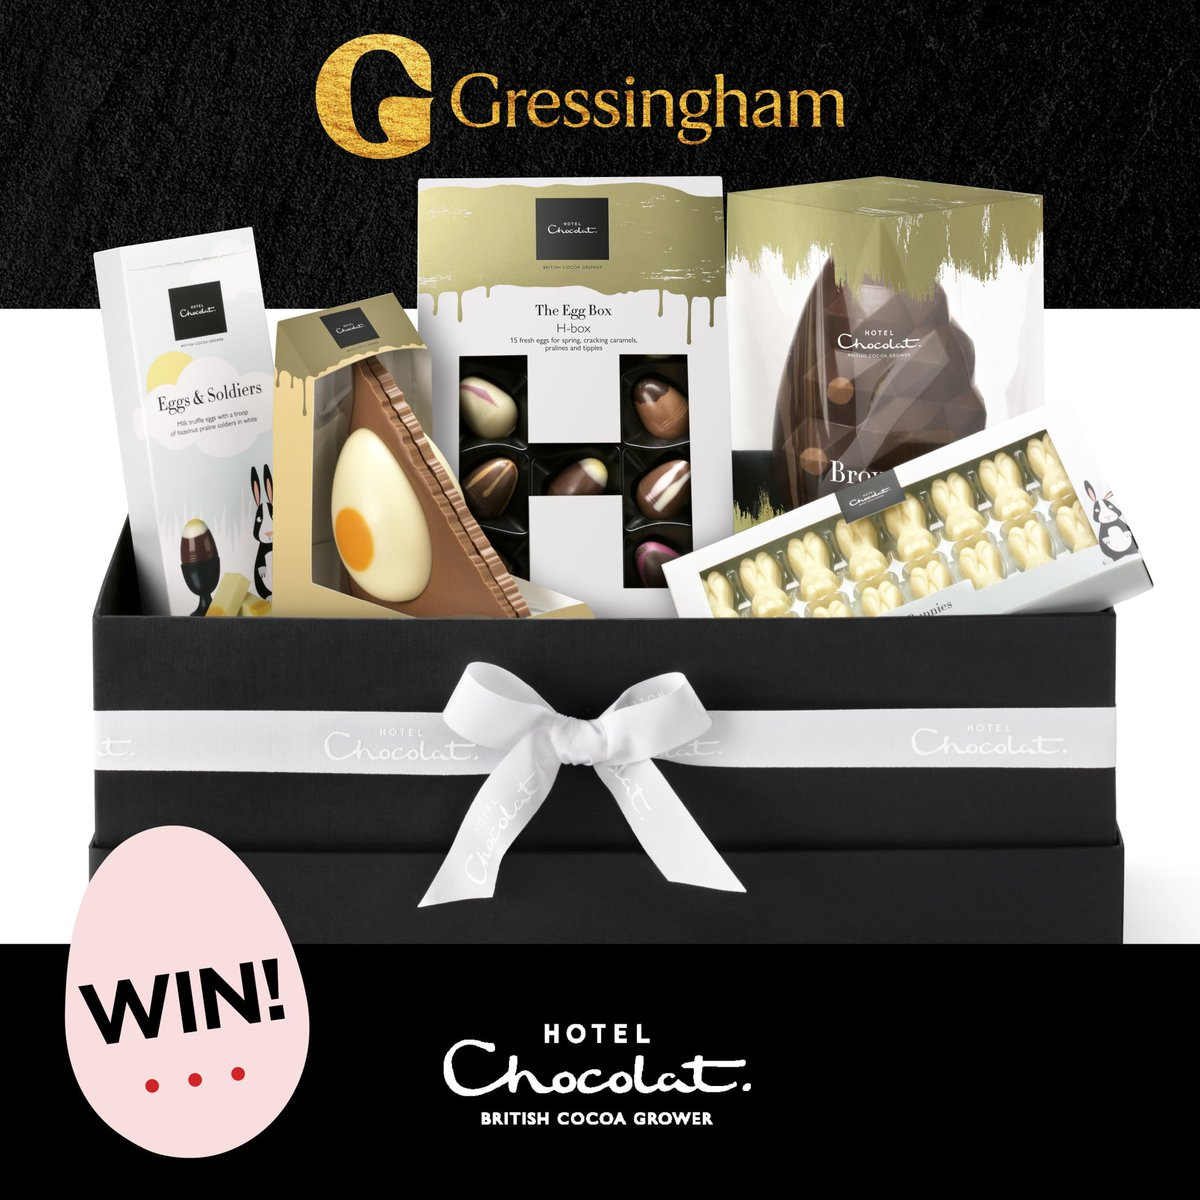 274be79b41a ... the chance to  win the Utterly Cracking Easter Hamper. Enter the   competition here https   www.gressinghamduck.co.uk win-easter-hamper …pic. twitter.com  ...